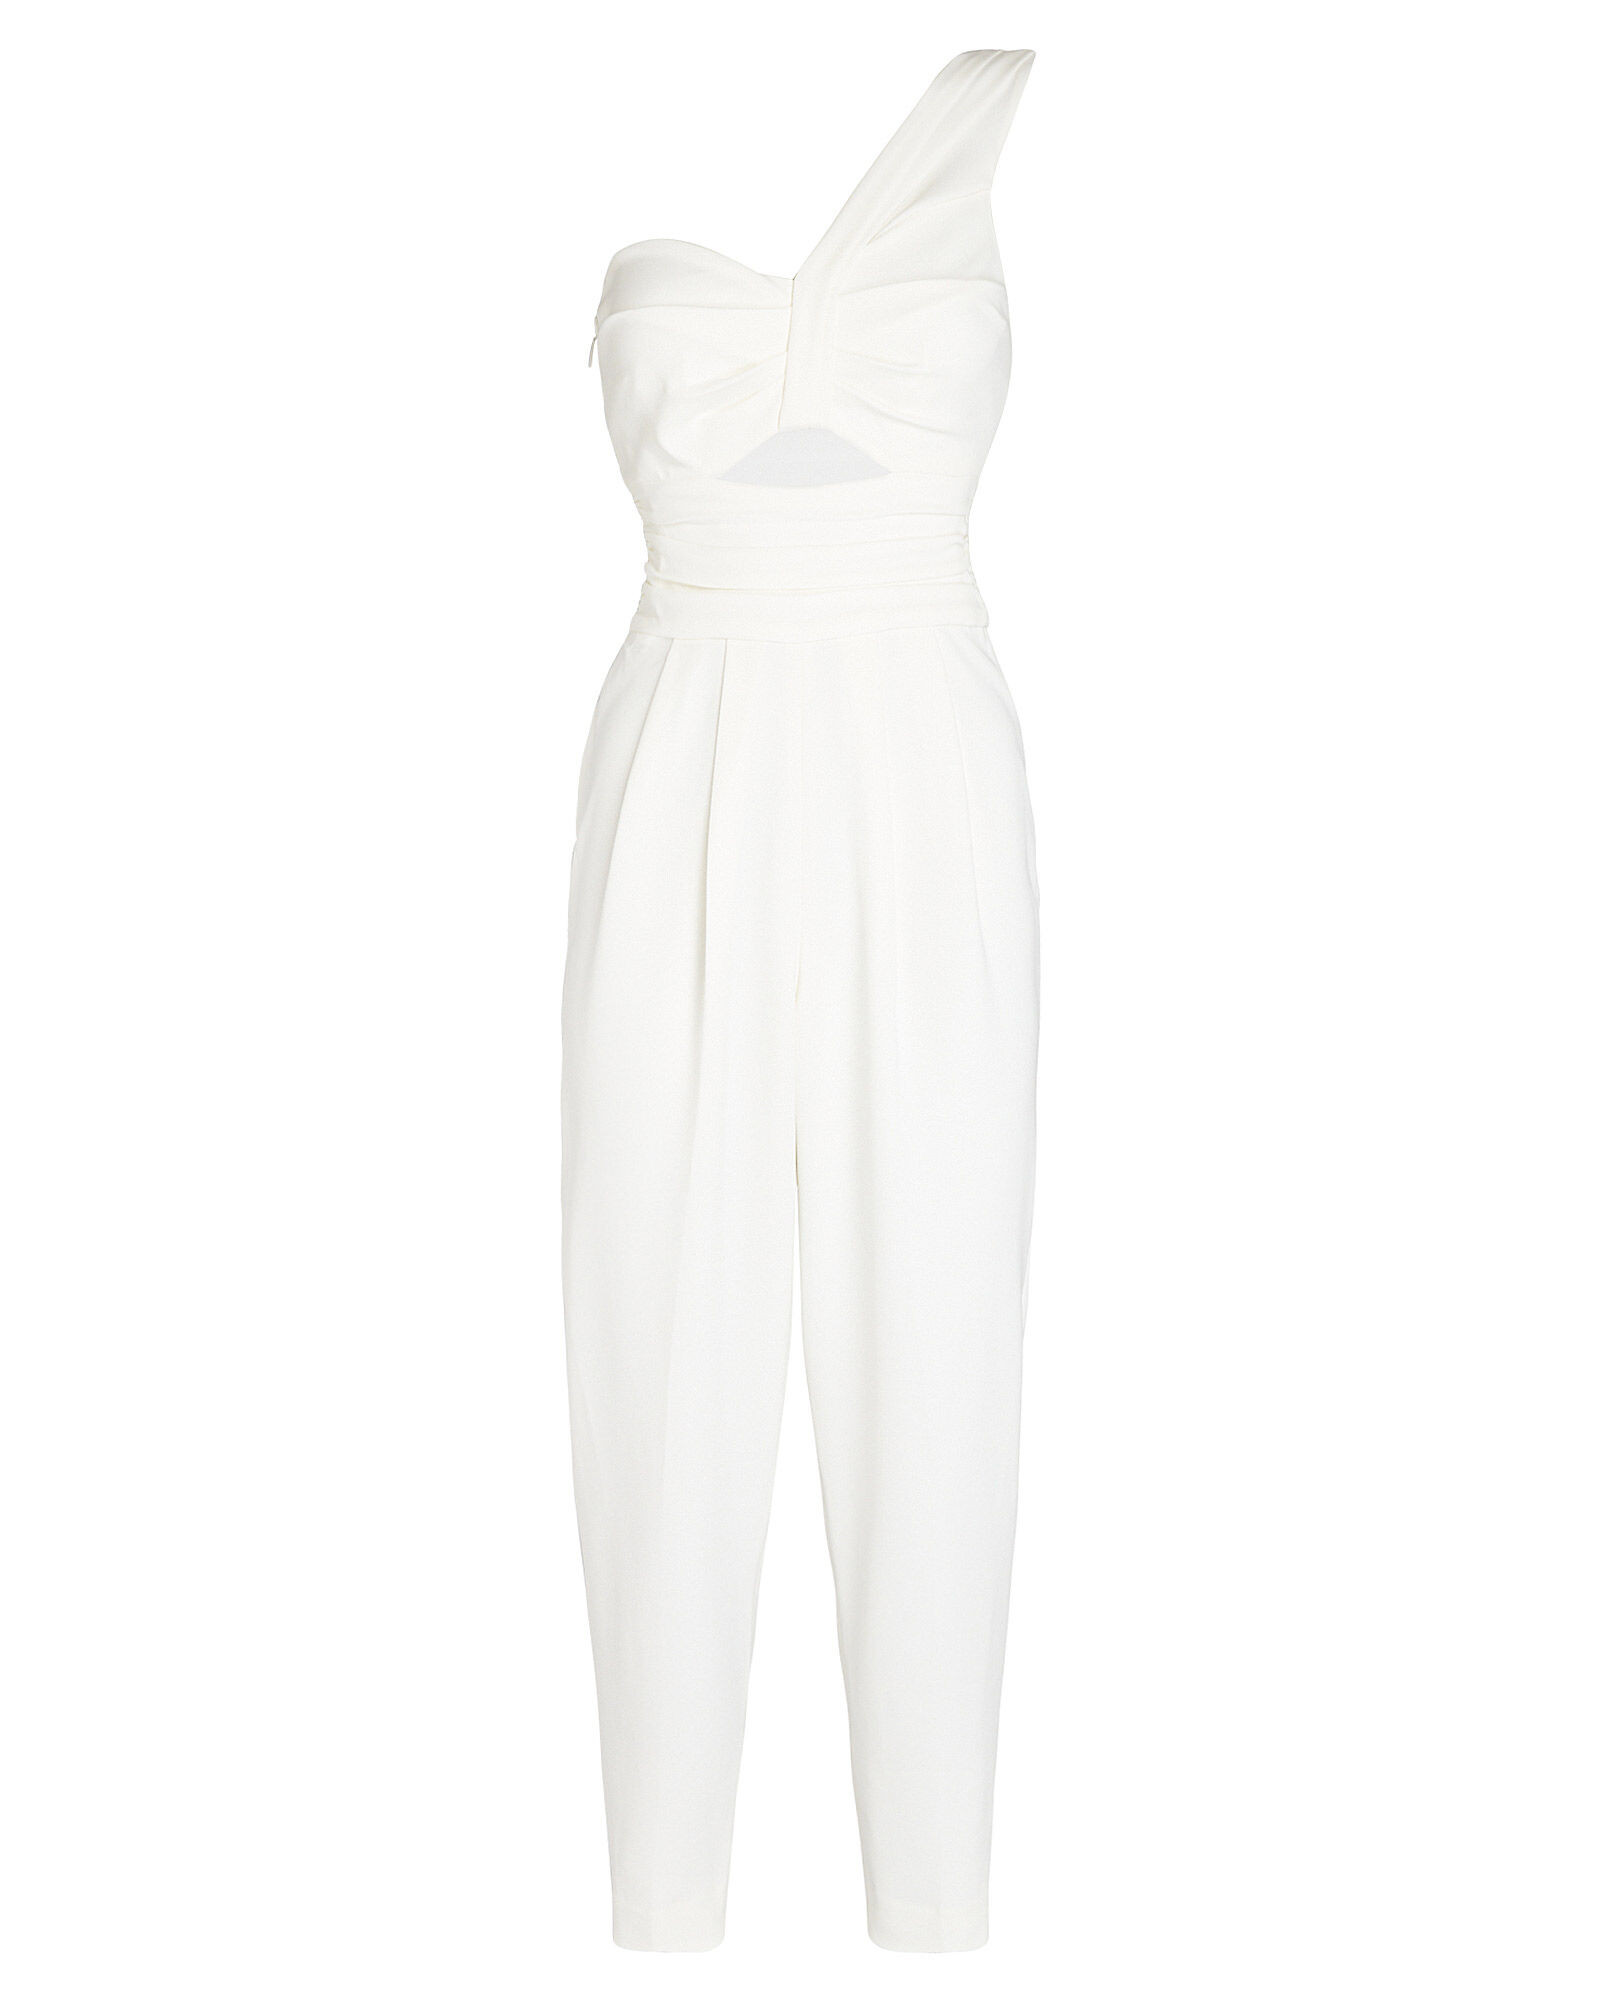 Athena Cropped One-Shoulder Jumpsuit, WHITE, hi-res